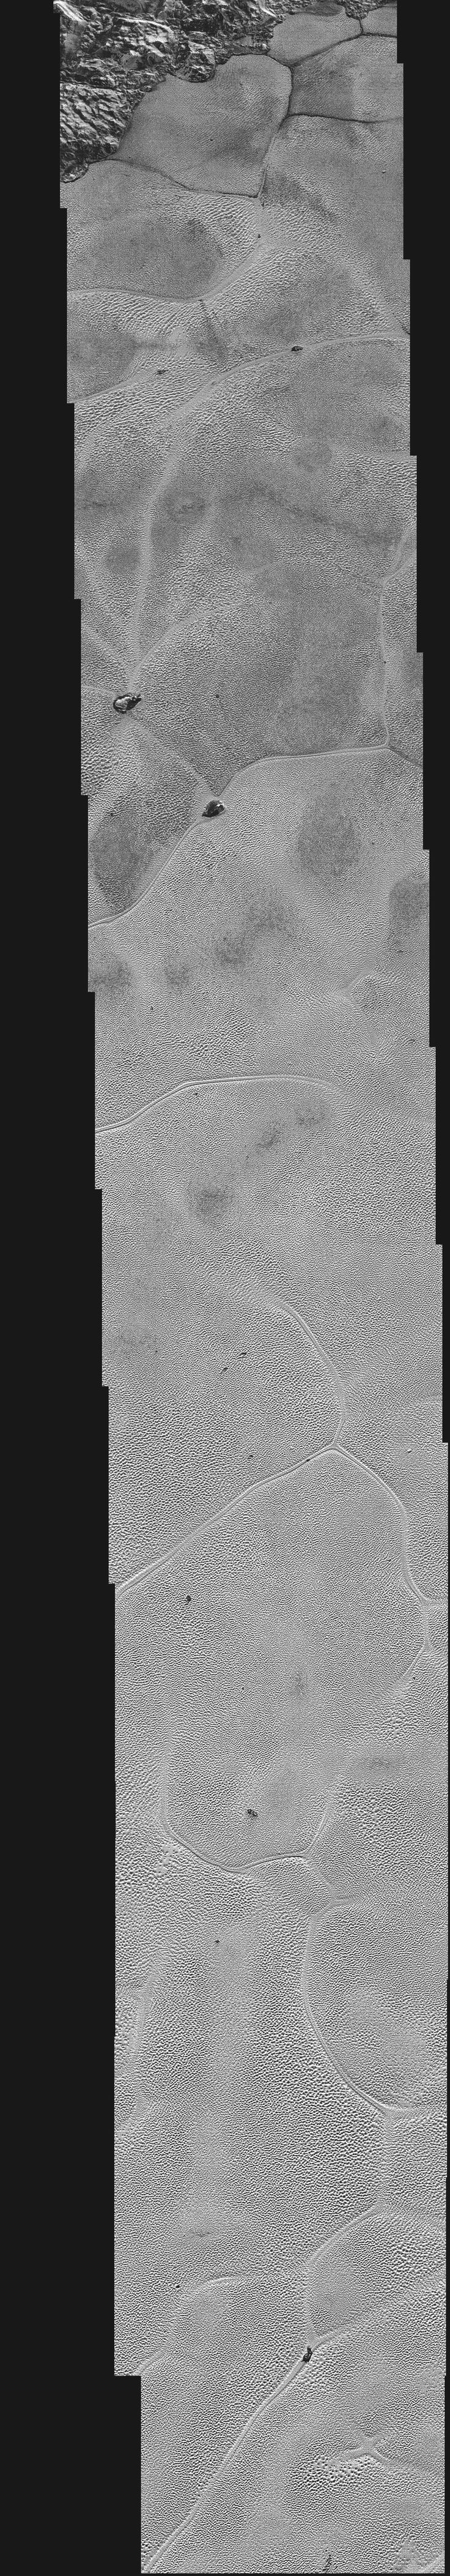 "Pluto's Icy Plains in Highest-Resolution Views from New Horizons | Nasa.gov | ""NASA's New Horizons spacecraft continues to transmit the sharpest views of Pluto that it obtained (& recorded) during its Jul 14, 2015 flyby. The newest image, returned on Dec 24, extends New Horizons' highest-resolution swath of Pluto to the center of the informally named Sputnik Planum & nearly completes the set of highest-resolution images taken by New Horizons."" Click to read & share the full article."